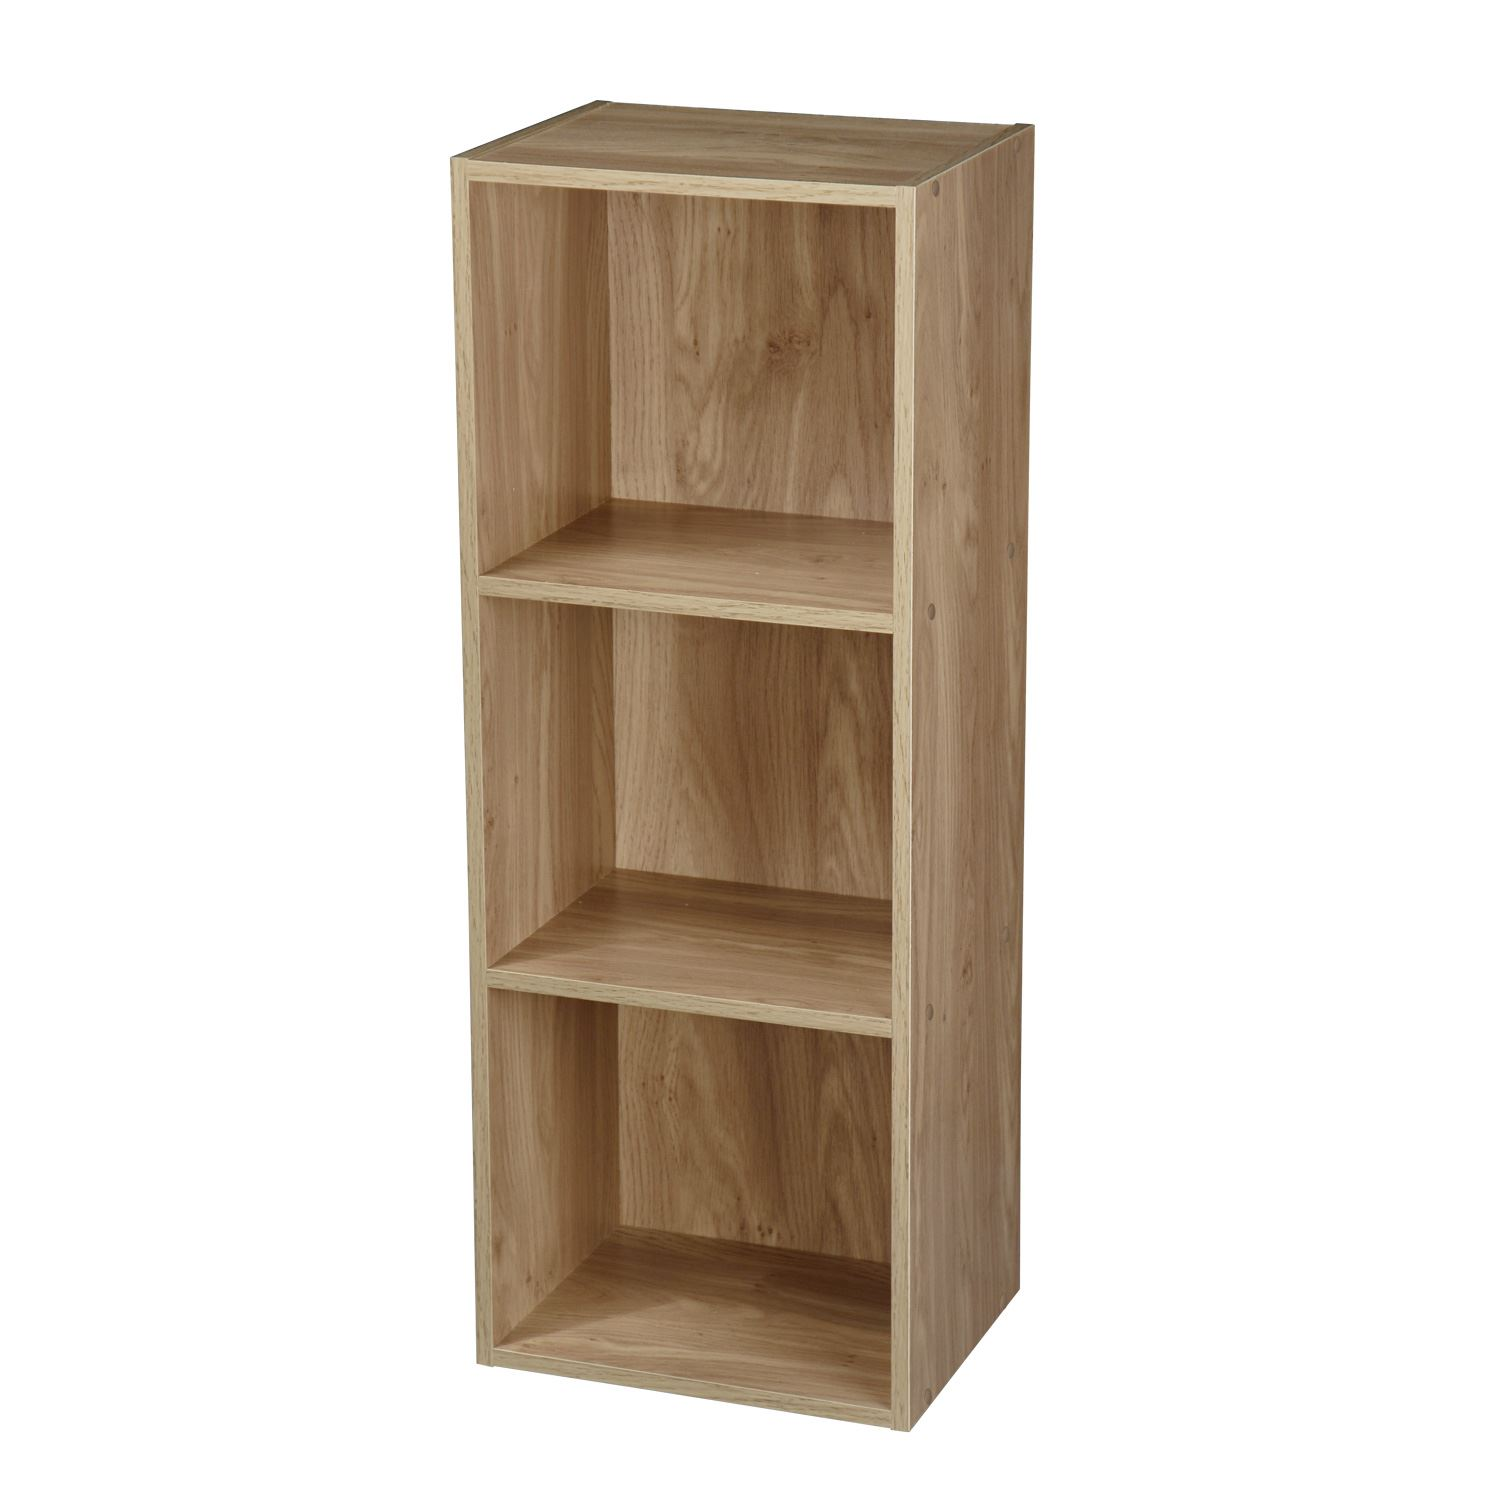 storage cabinet with shelves 2 3 4 tier wooden bookcase shelving display shelves 26830